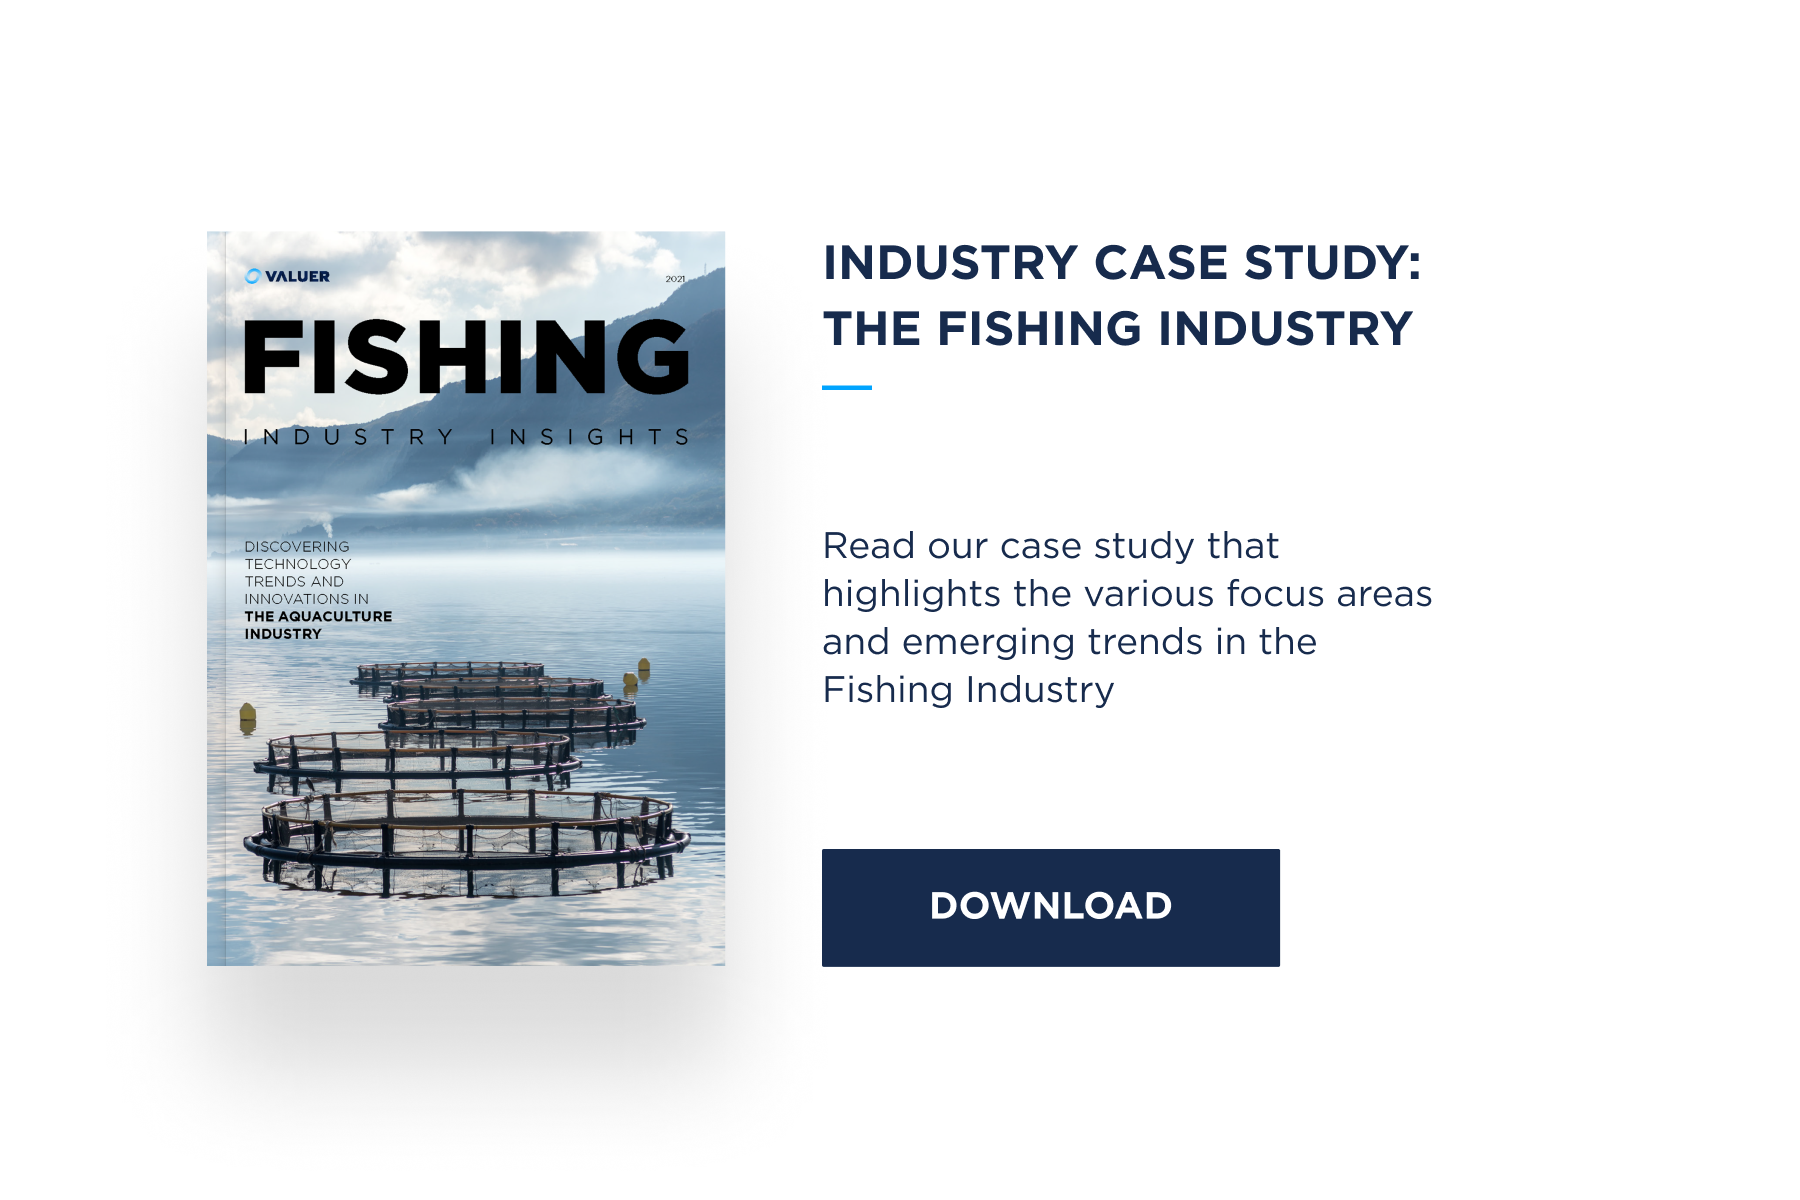 The Fishing industry case study with image fish farming pens